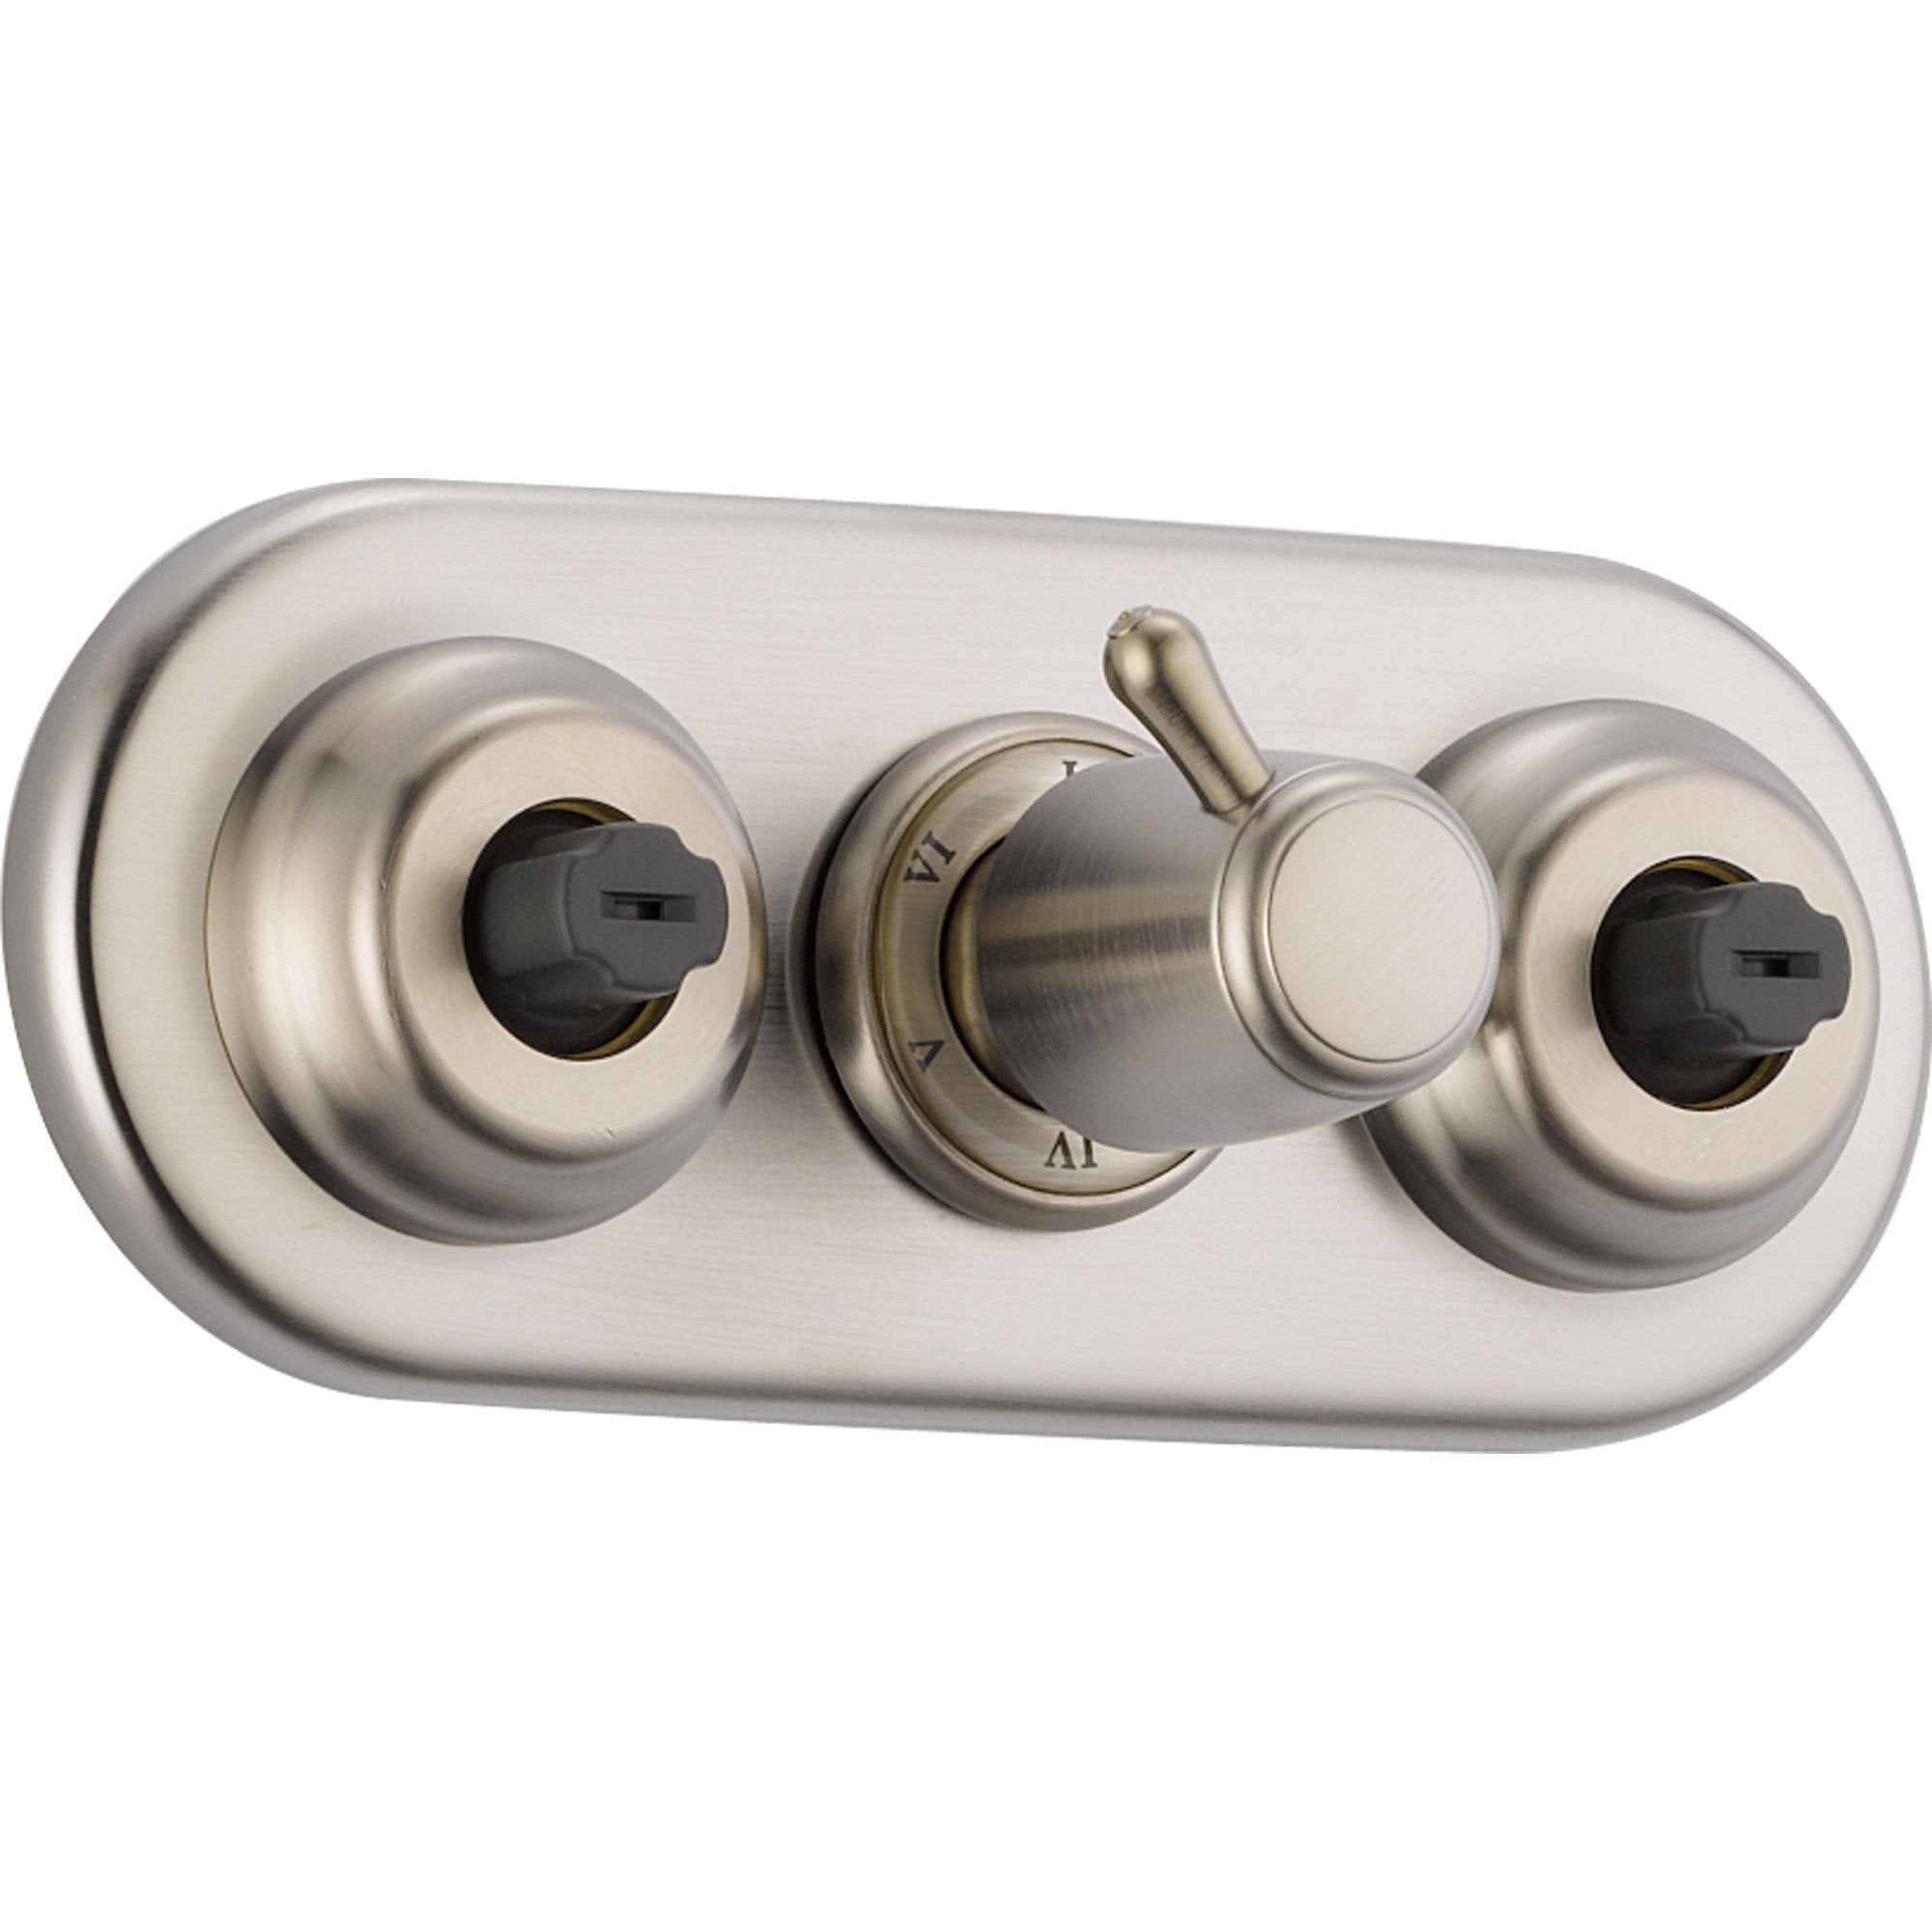 delta xo stainless steel shower diverter with body sprays includes valve d937v - Shower Diverter